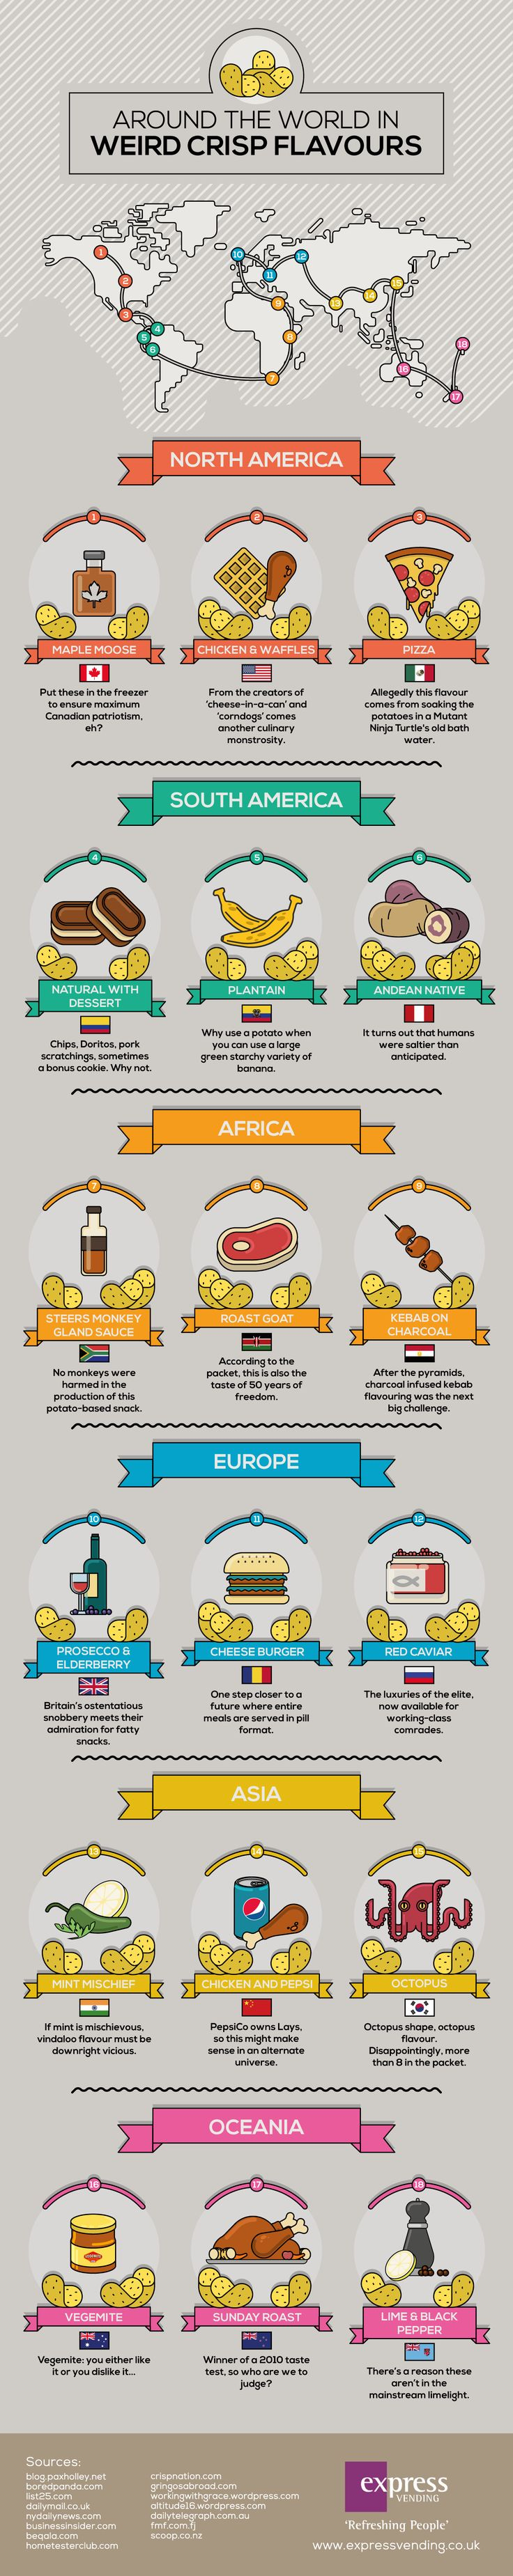 Around the World in Weird Crisp Flavours #Infographic #Food #Travel